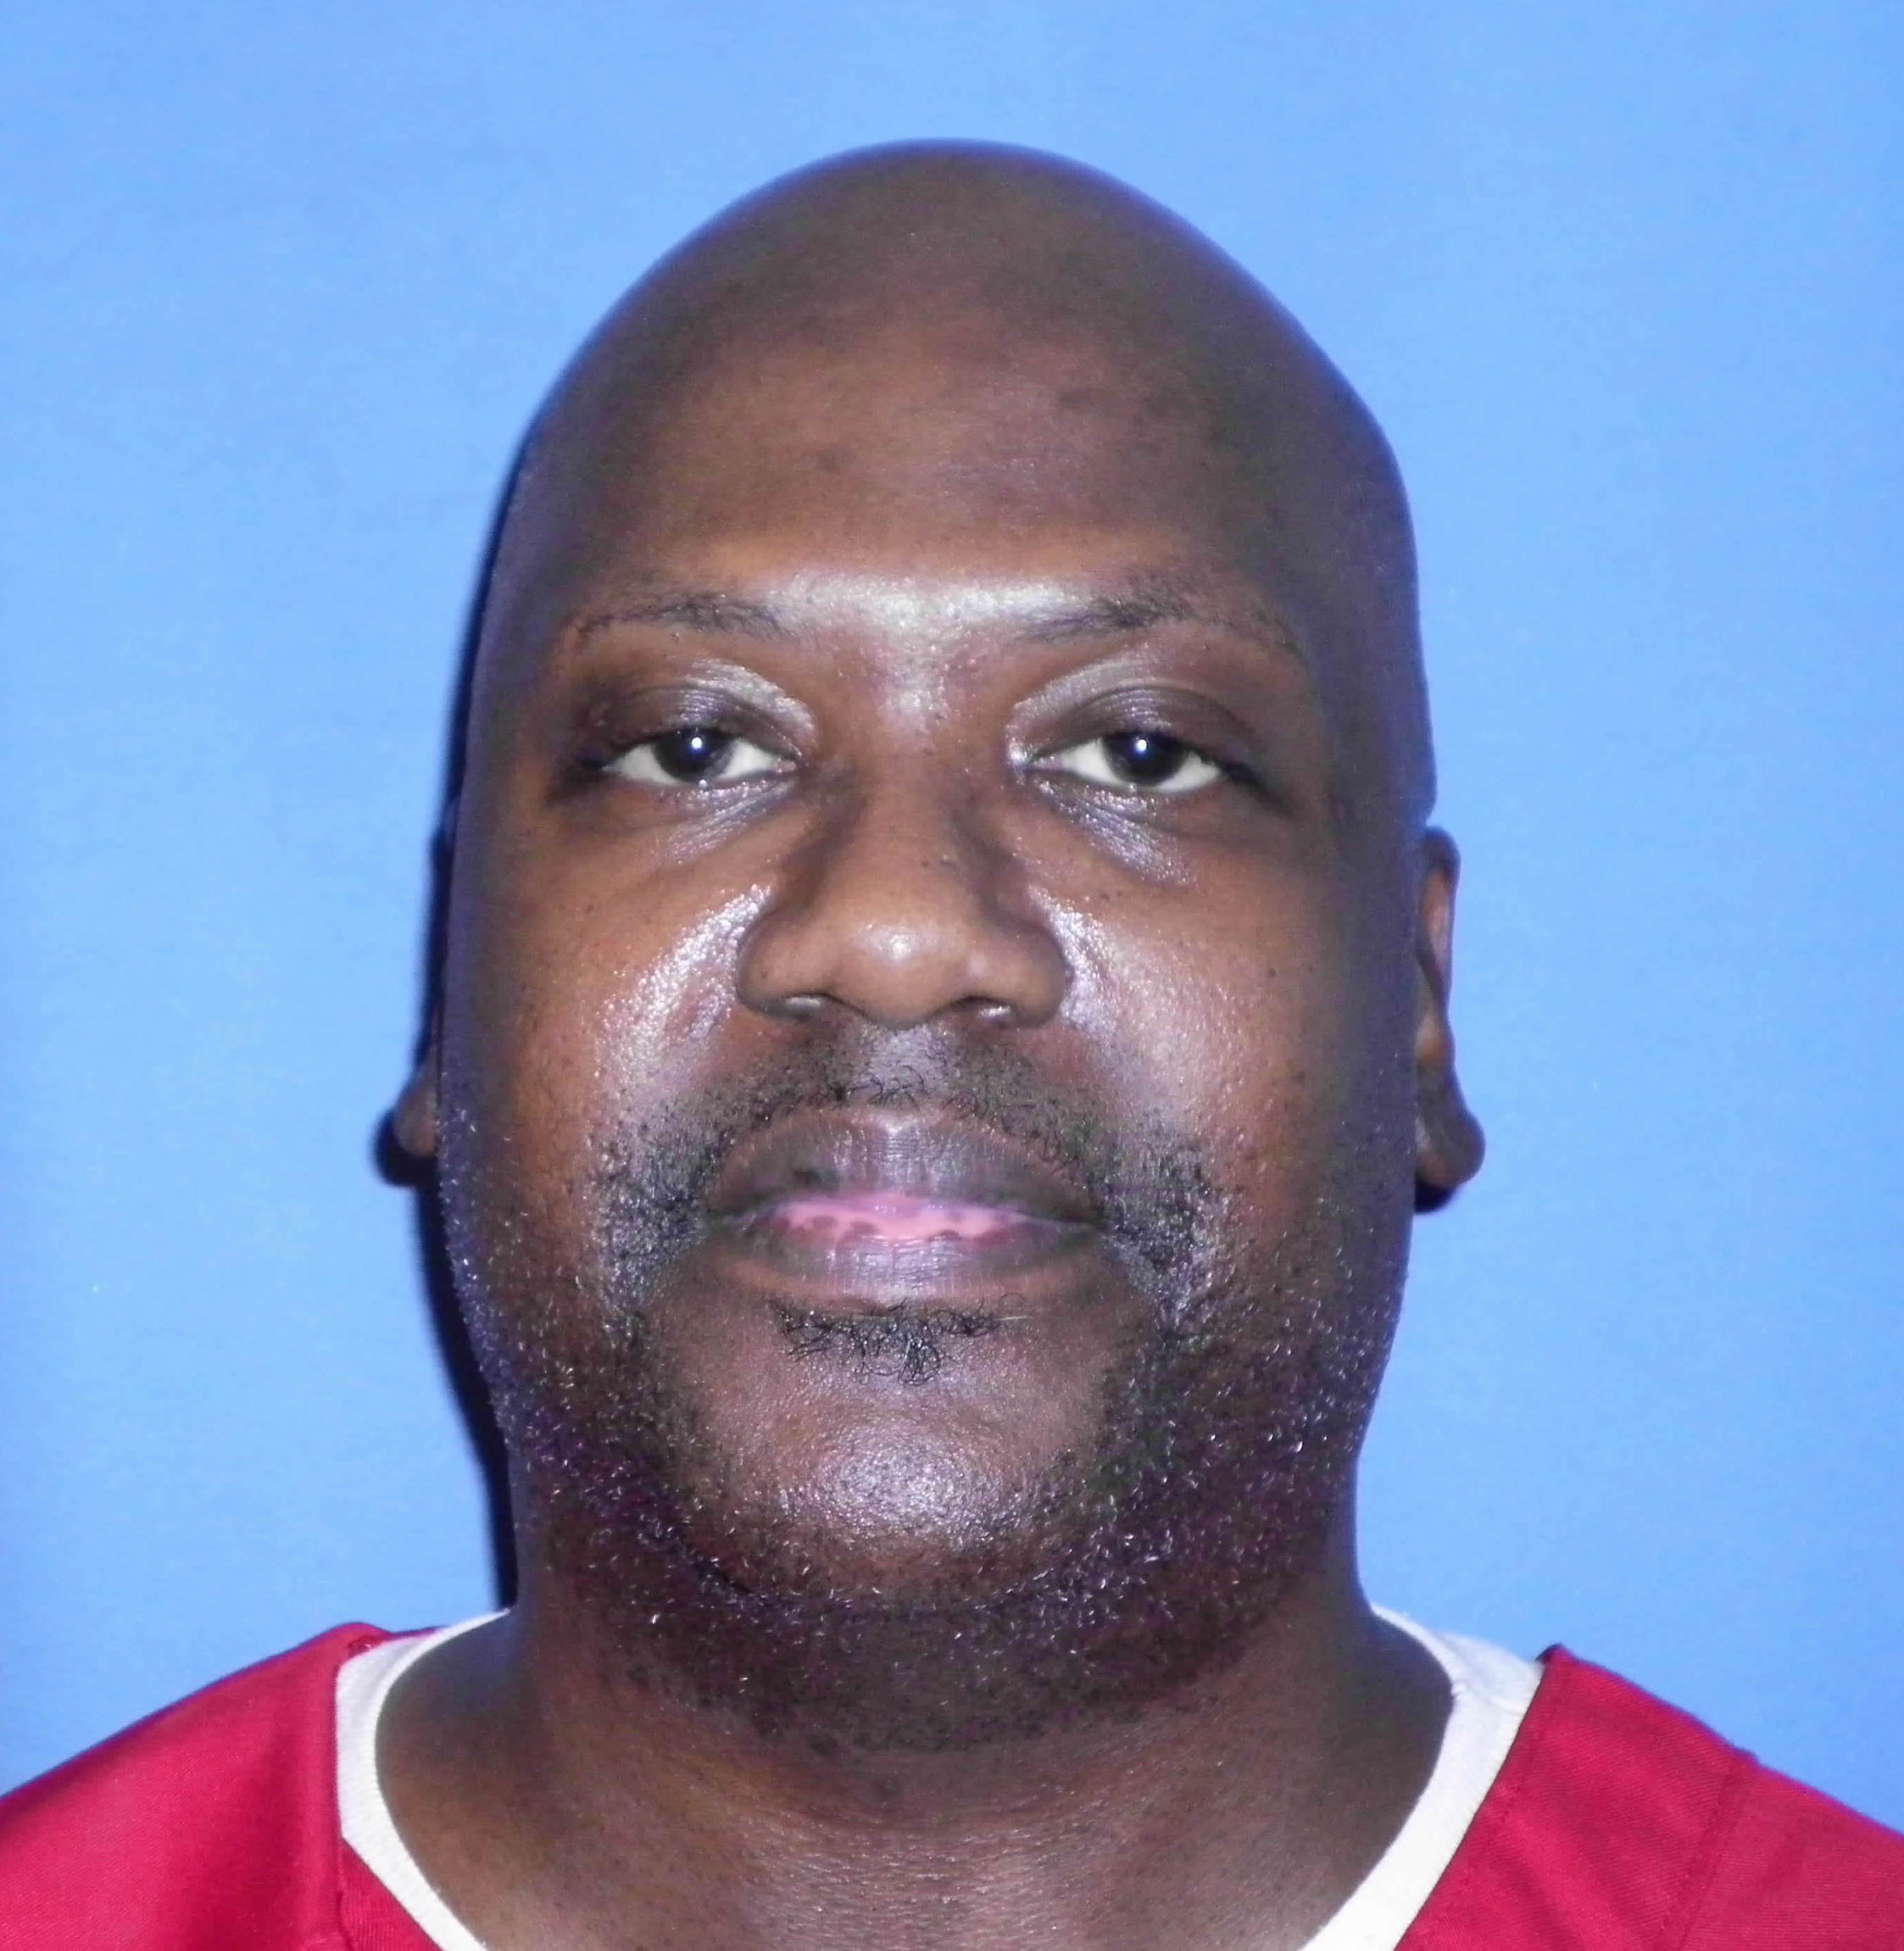 Top US court to study case of black man tried six times for same crime